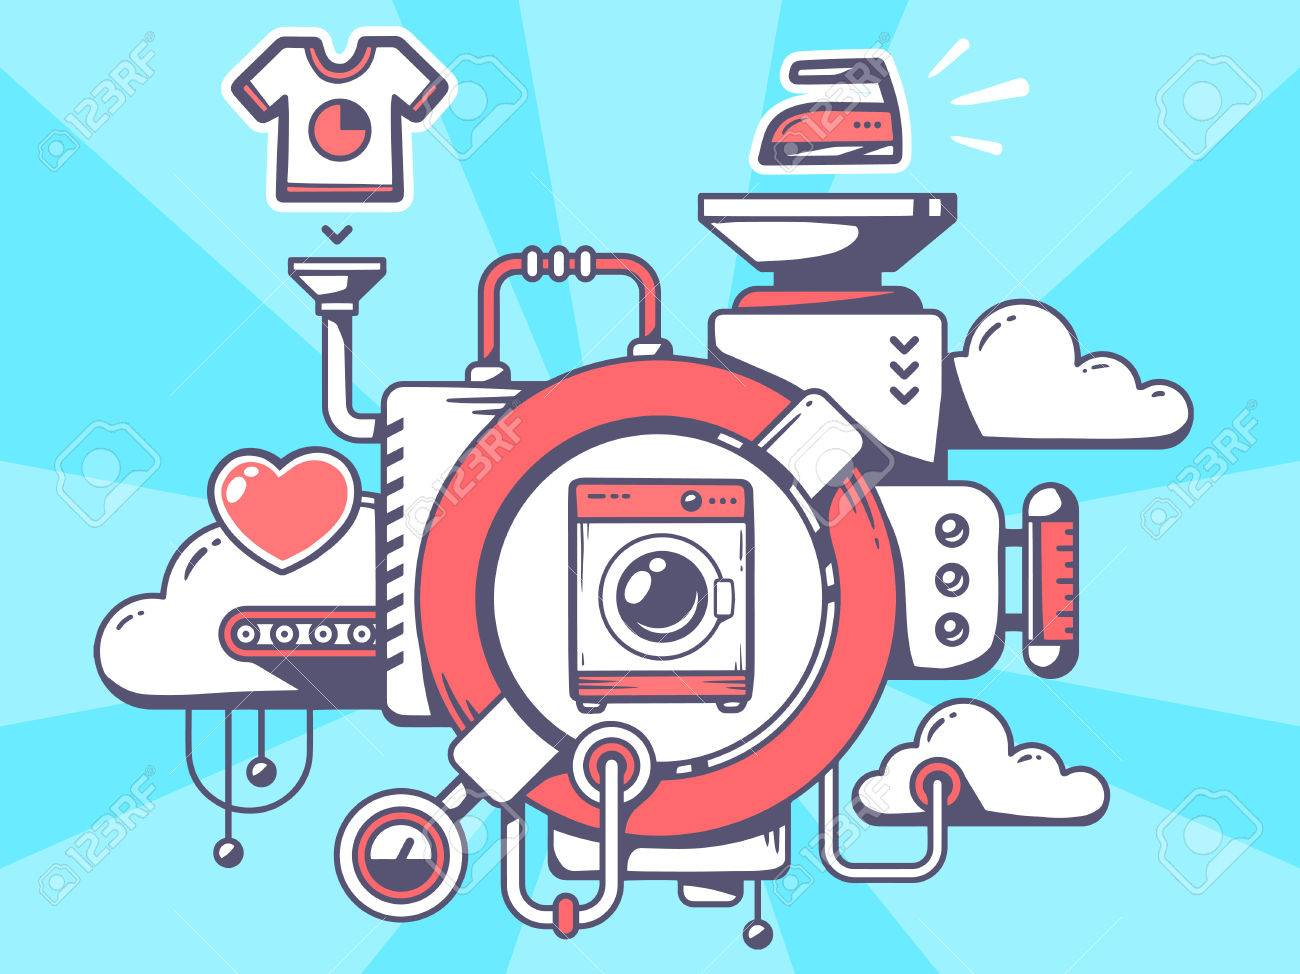 Vector illustration of mechanism with washing machine and relevant icons on blue background. Line art design for web, site, advertising, banner, poster, board and print. - 36269629